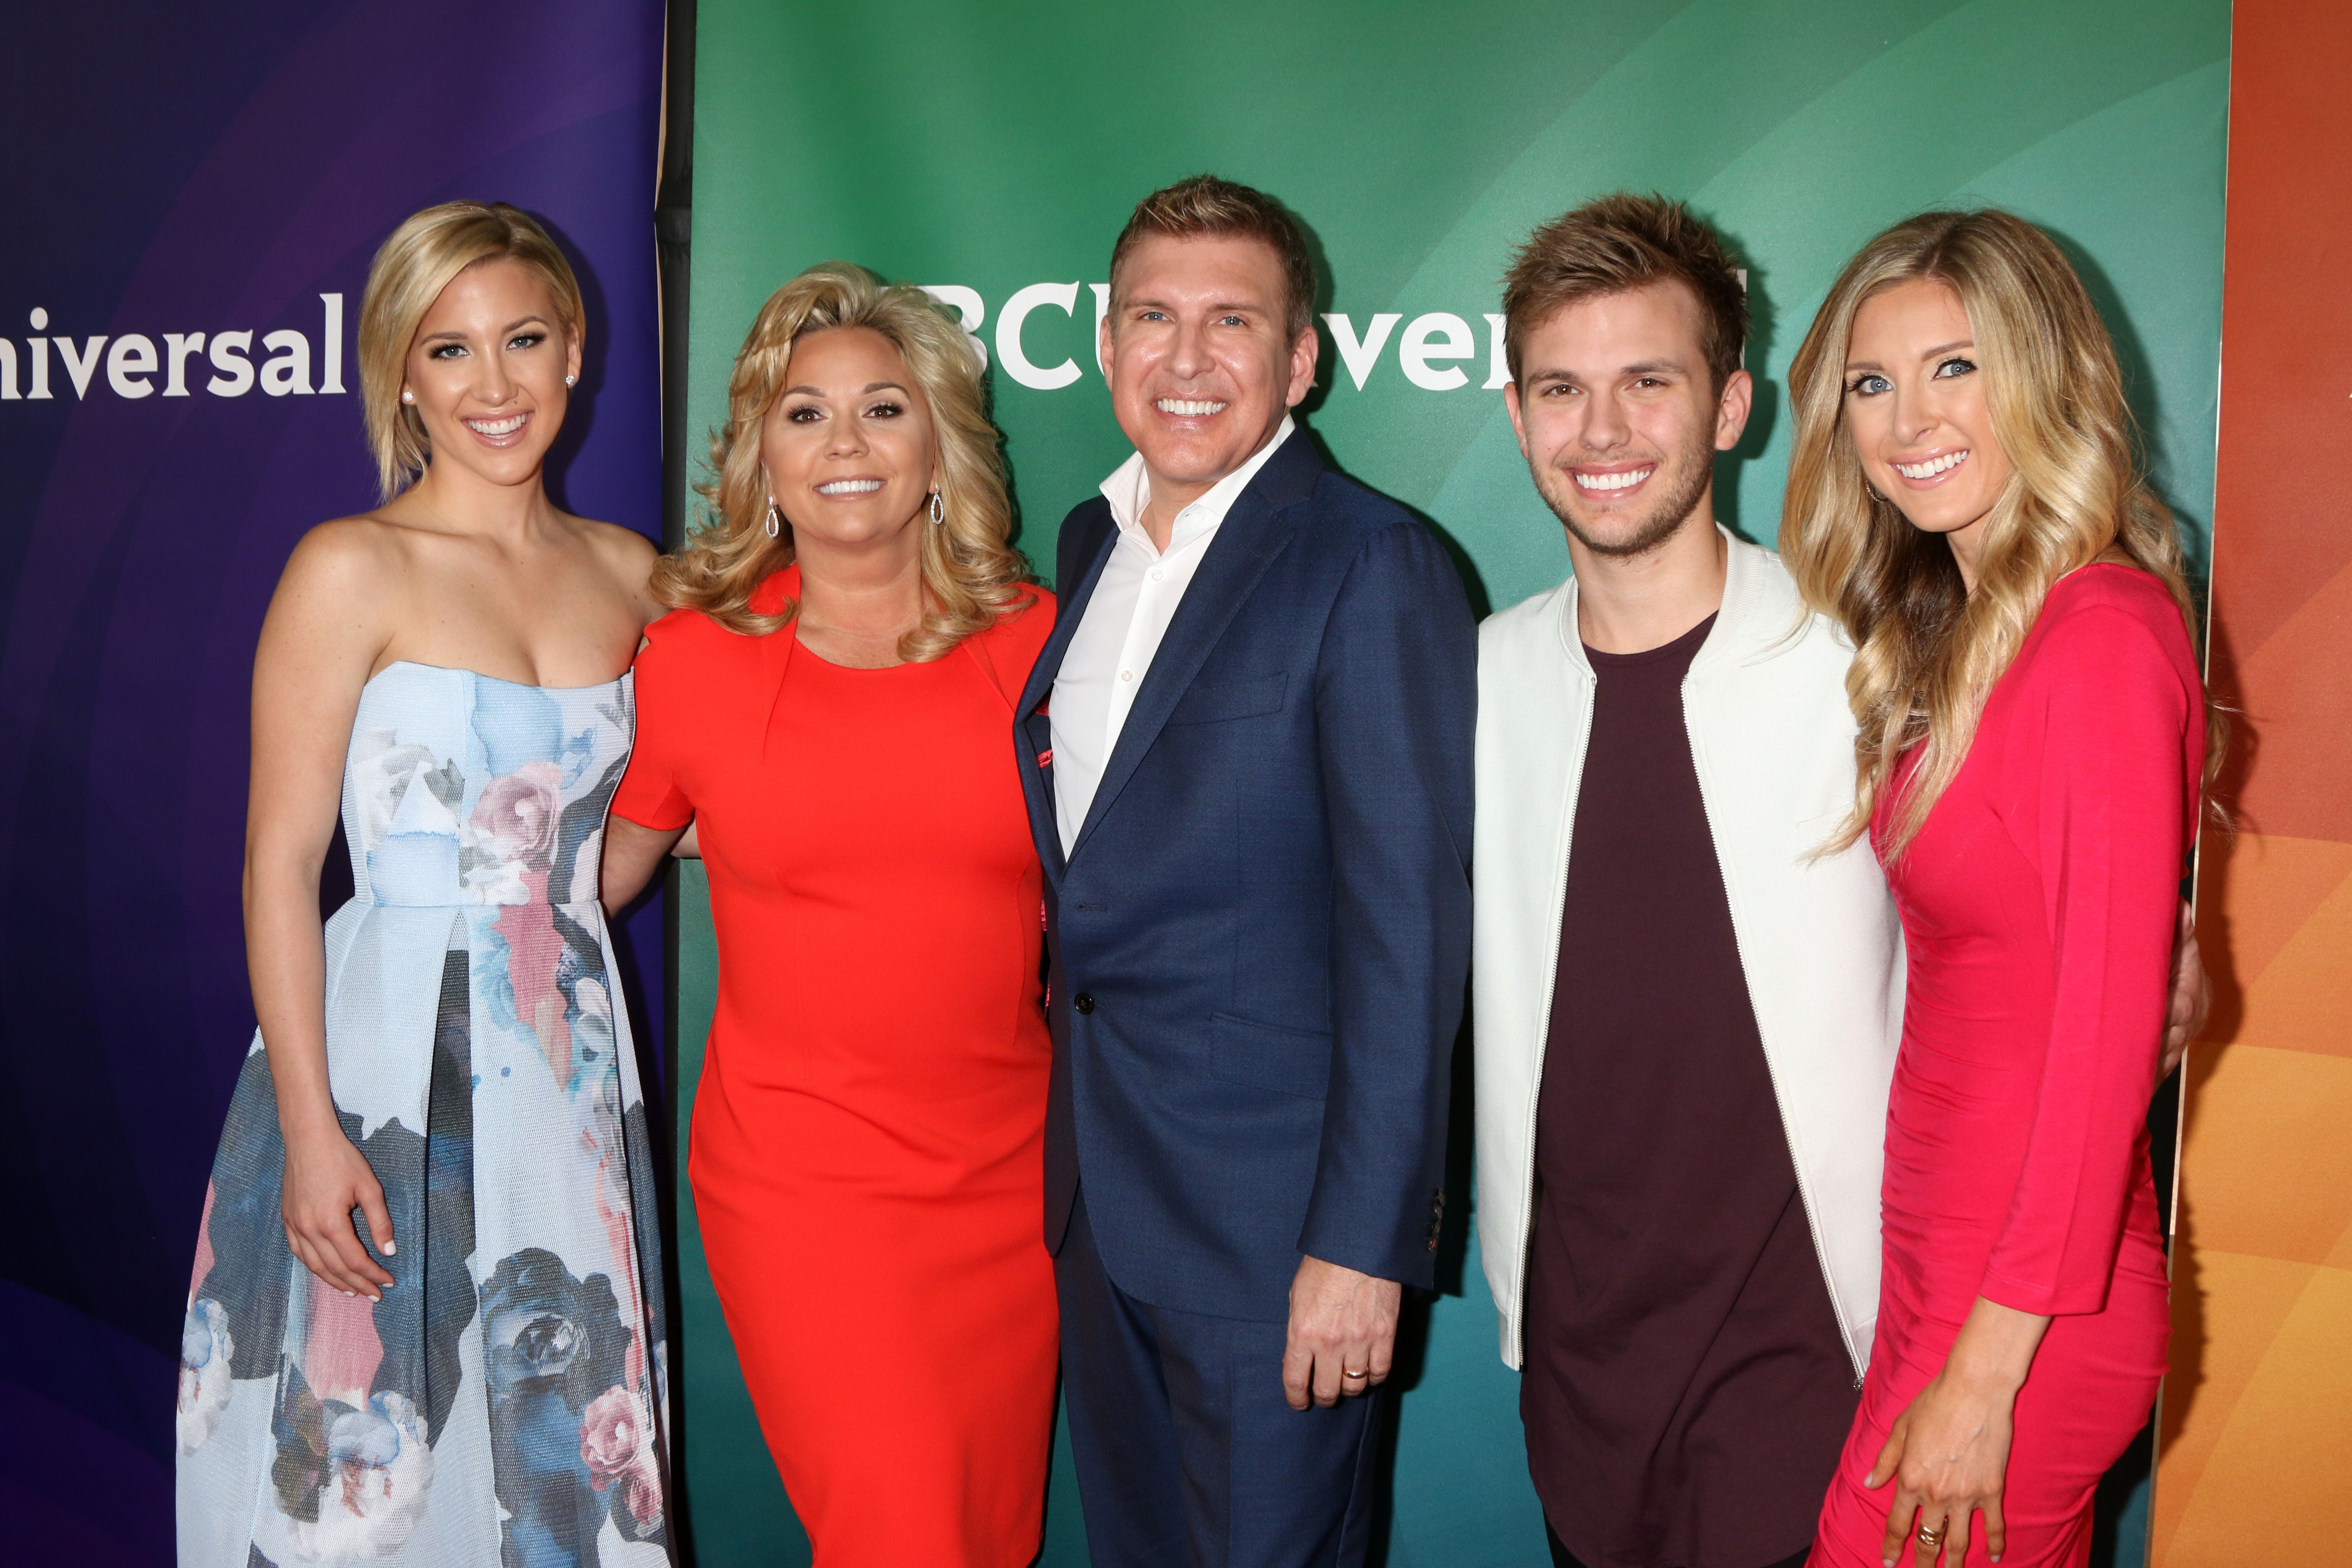 Savannah, Todd, Julie, and Chase Chrisley, along with Lindsie Chrisley Campbell at the NBCUniversal Summer Press Day at the Four Seasons Hotel Westlake Village on April 1, 2016, in California | Photo: Shutterstock